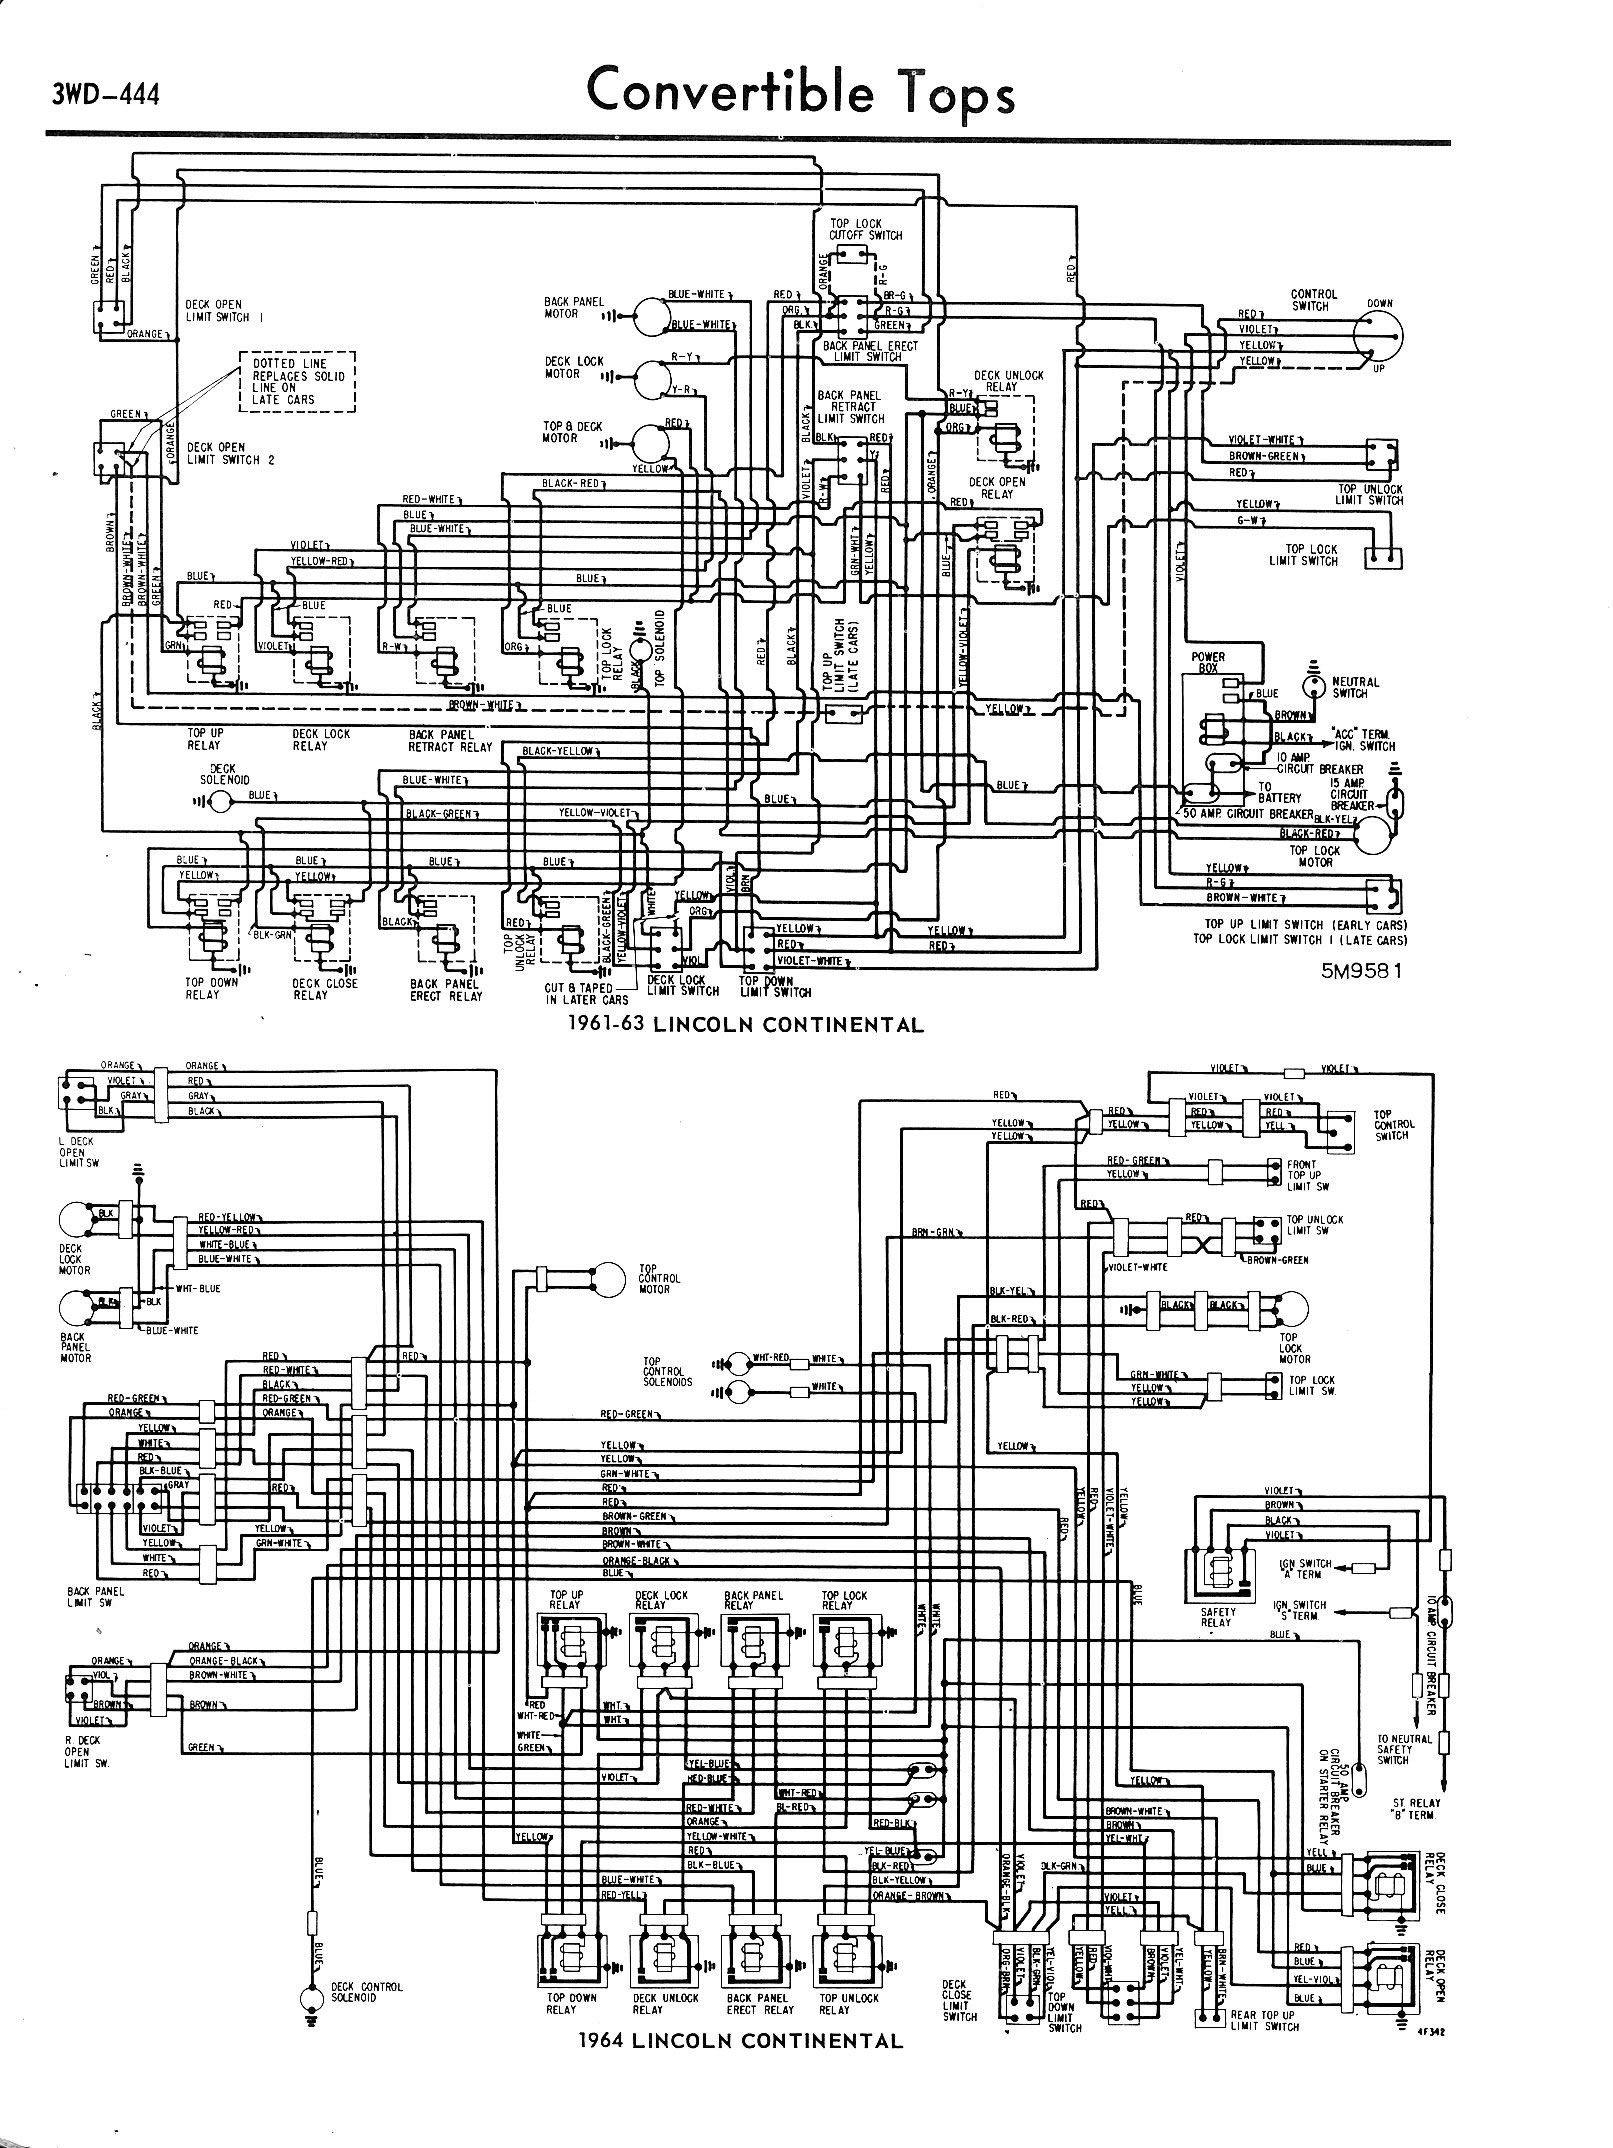 Neutral Safety Switch Wiring Diagram 64 Falcon Books Of Ranchero Ford Diagrams Rh Wizard Com